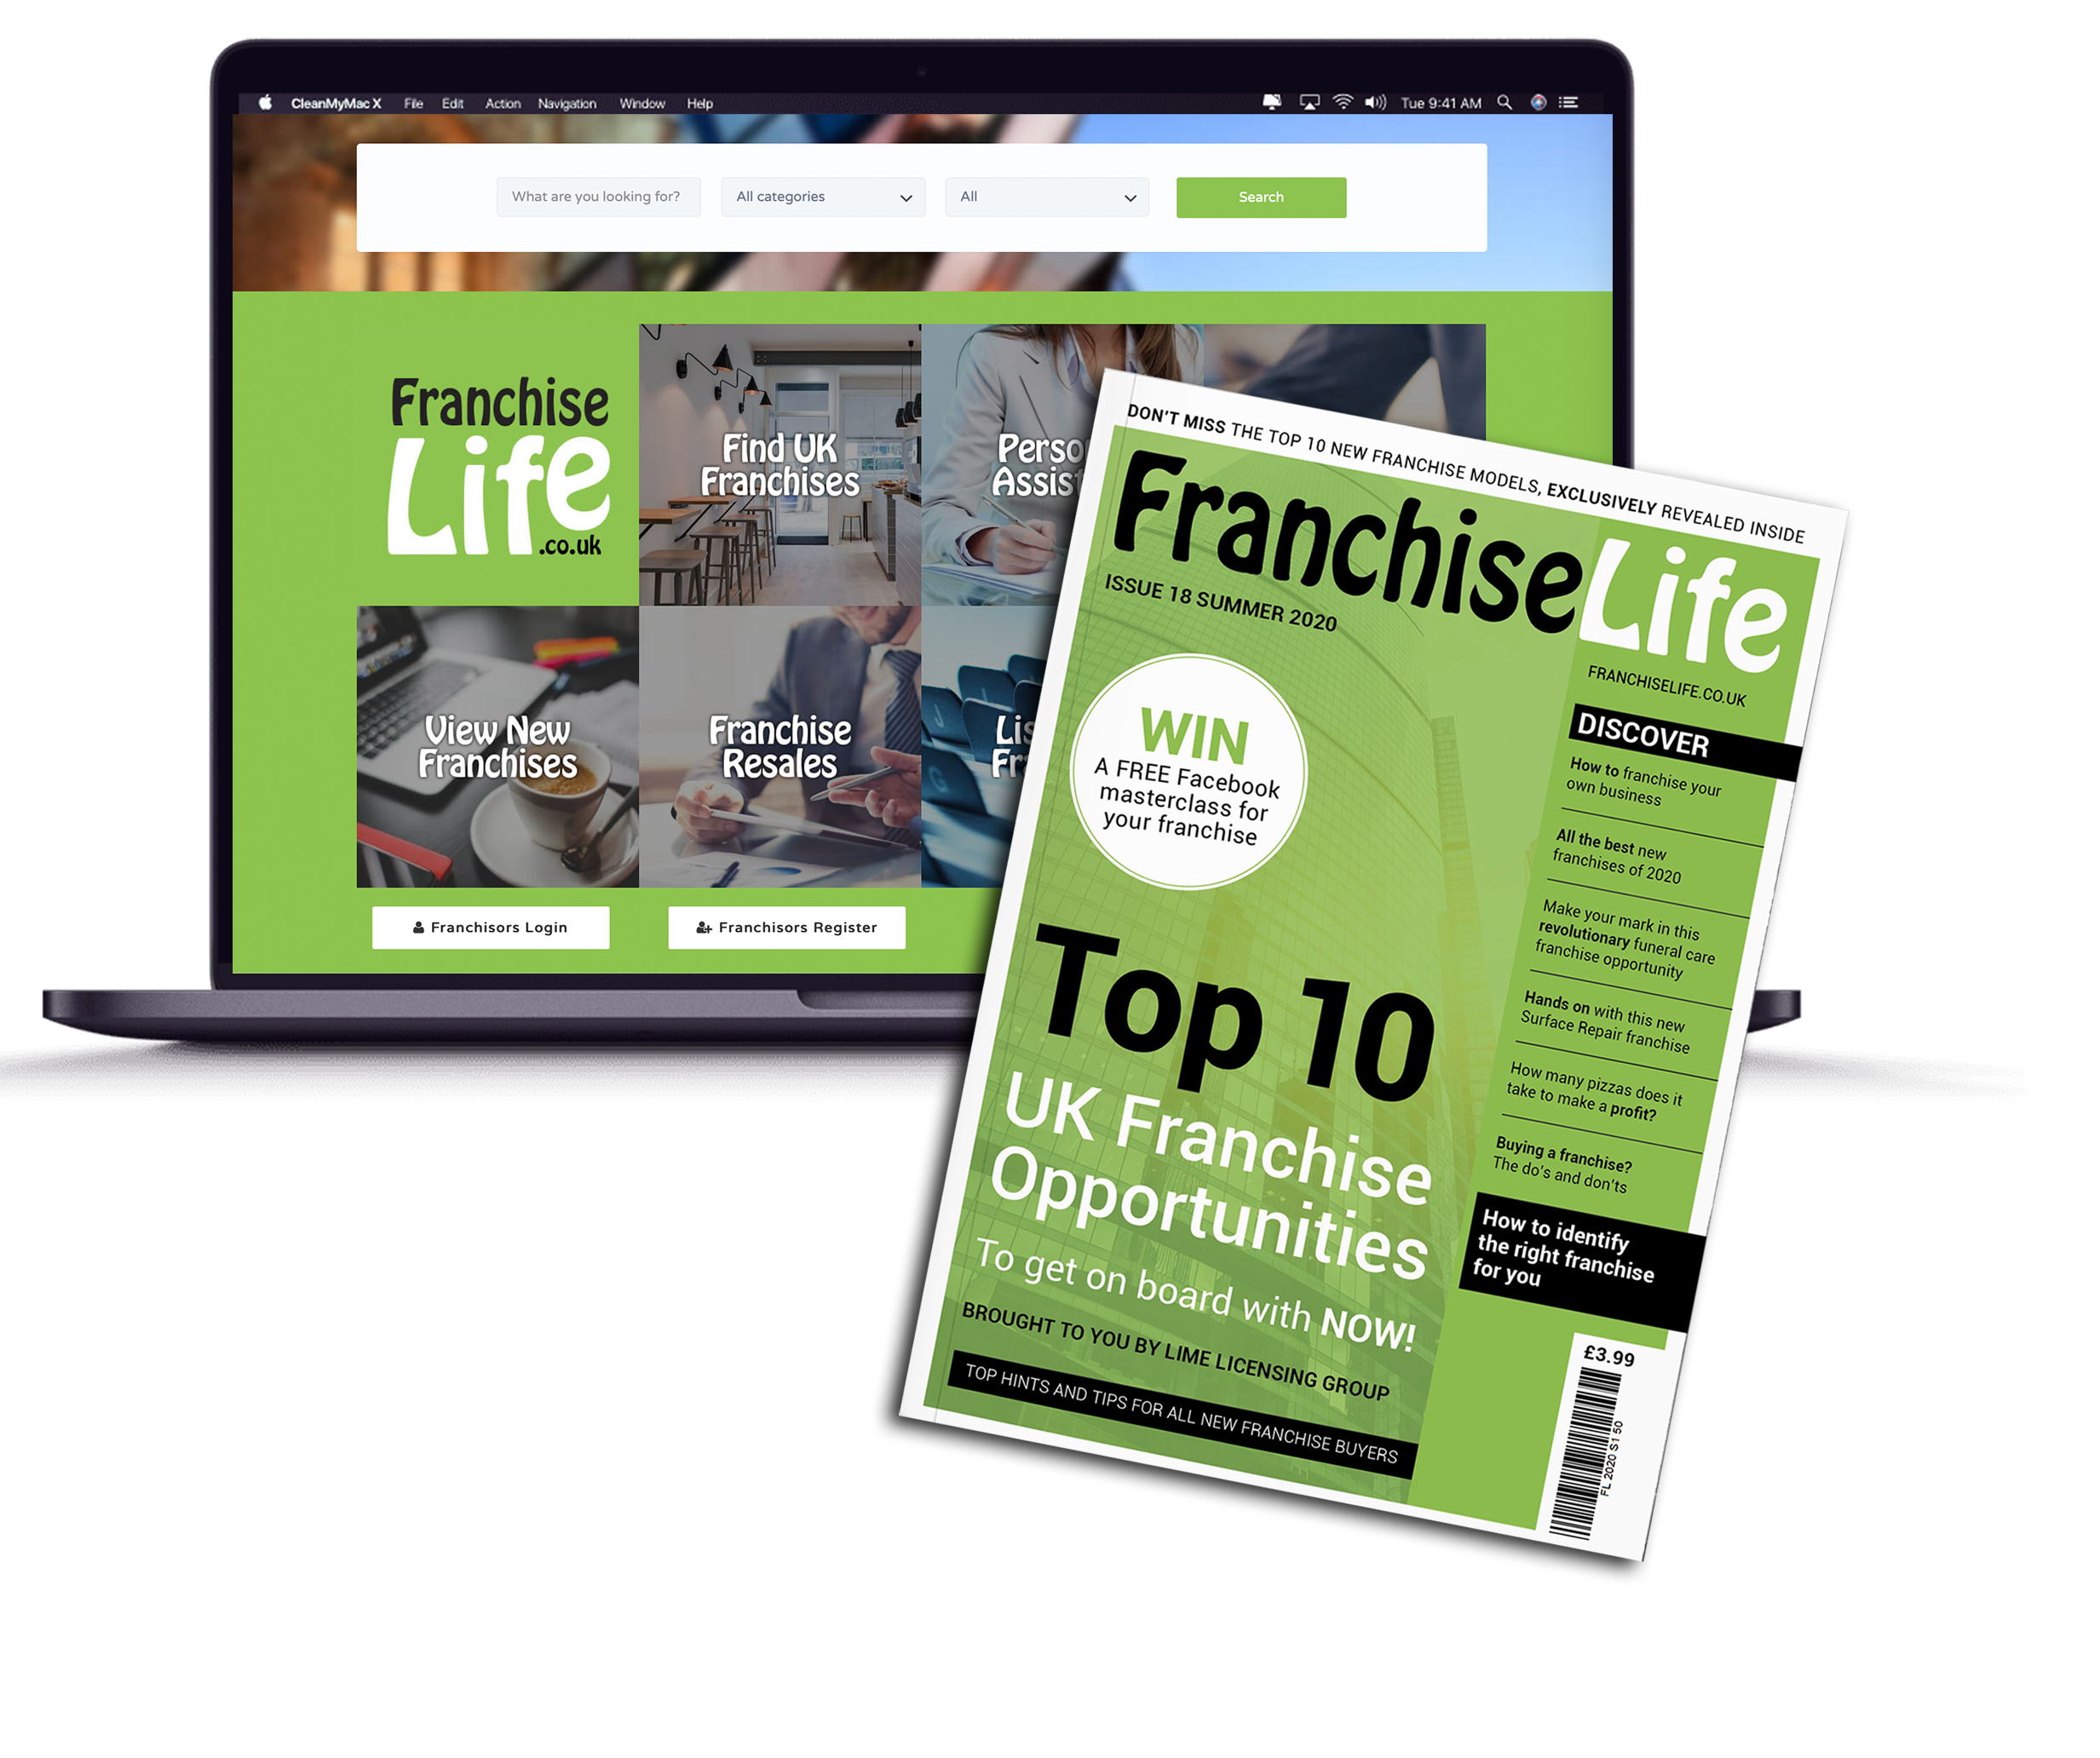 Franchise-Life-Package Online Franchise Training